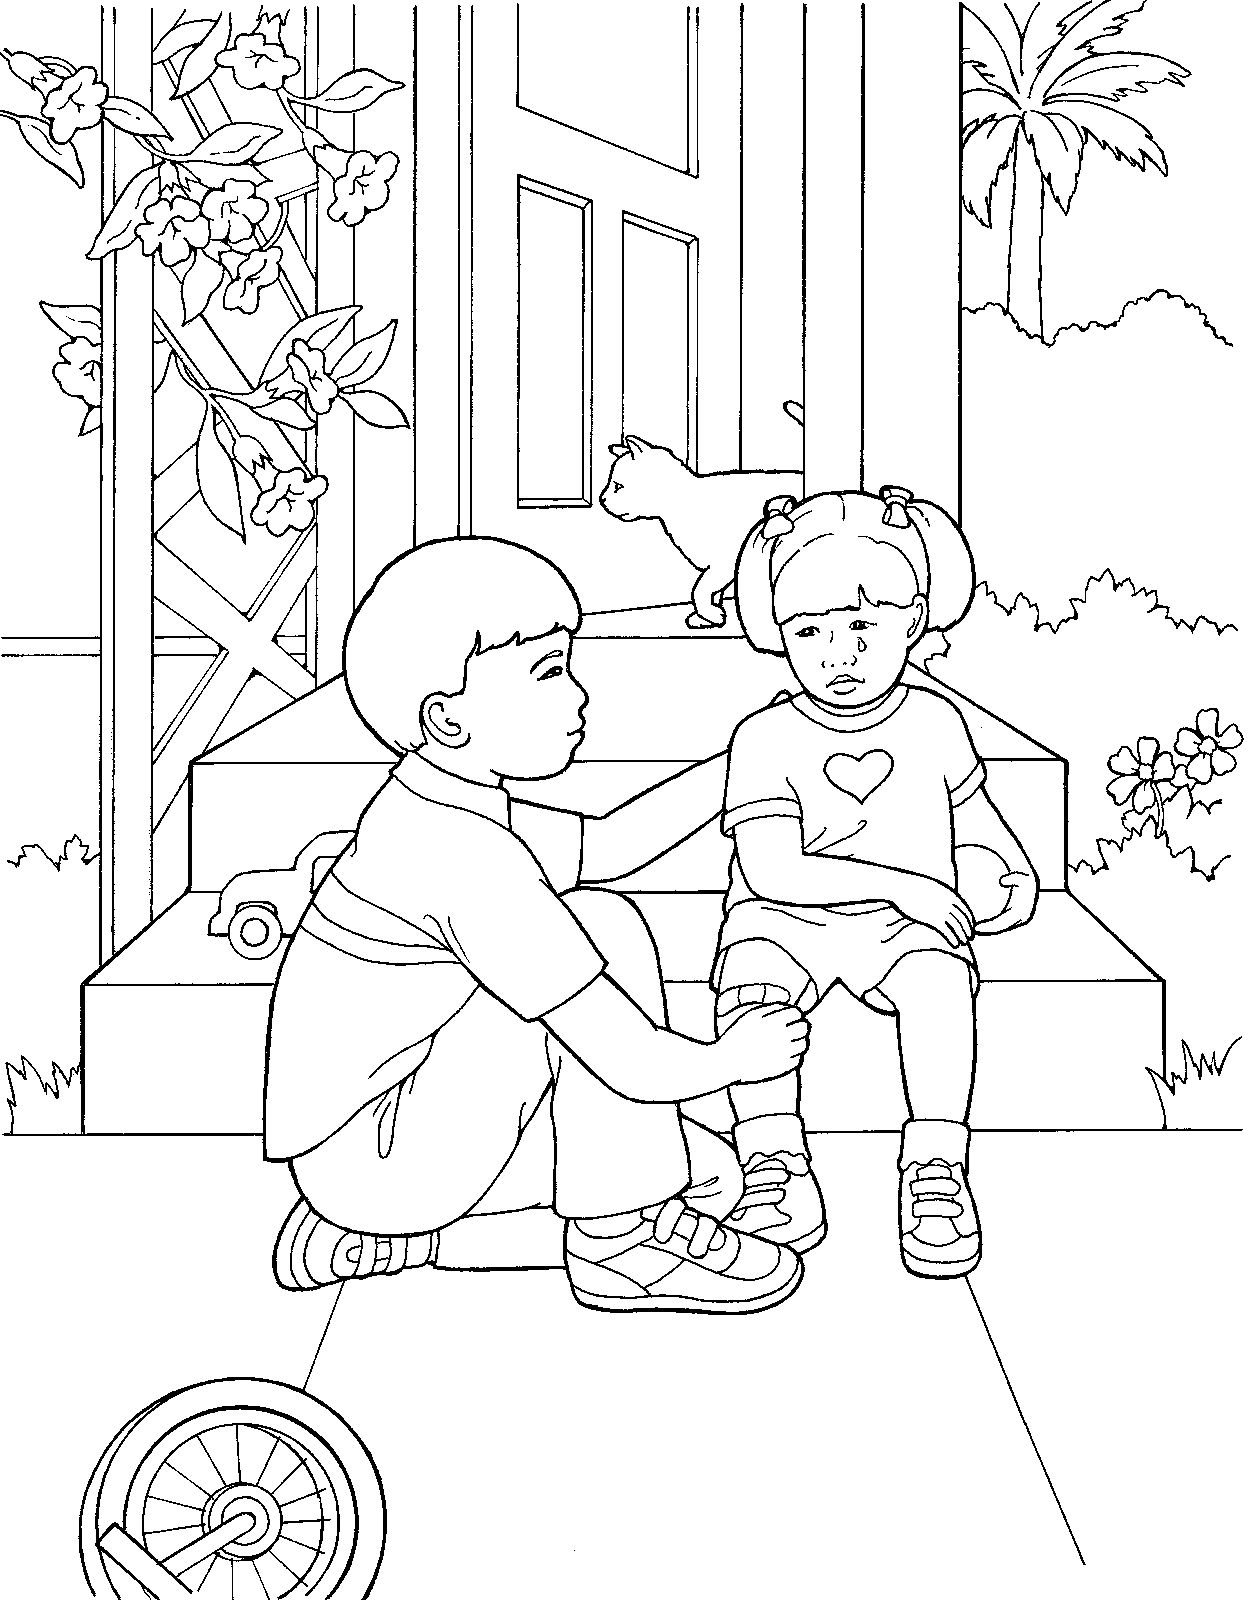 Primary coloring page from lds A little boy forts